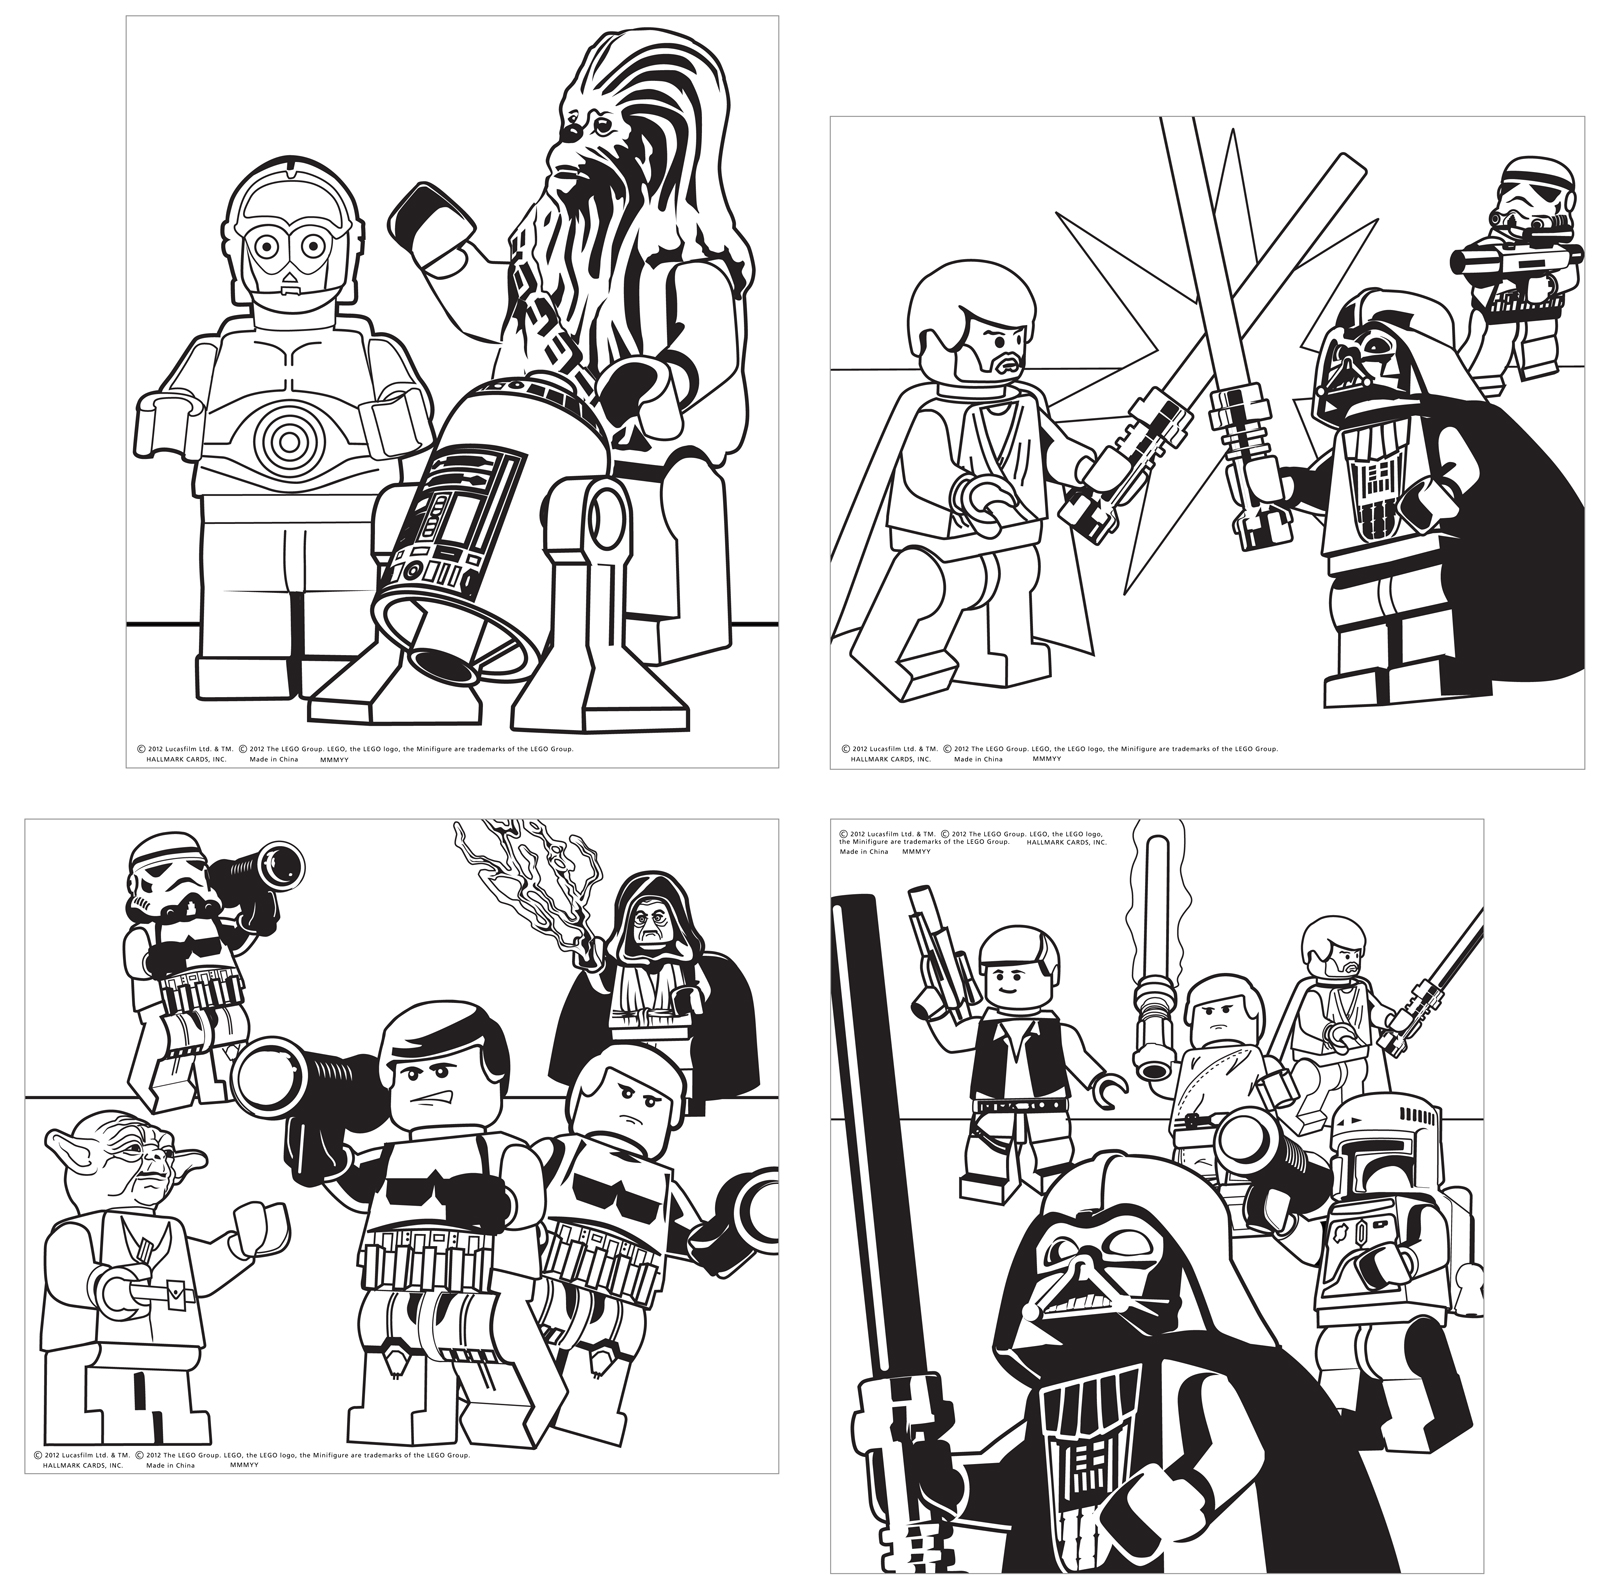 Coloring pages lego star wars - Lego Star Wars Coloring Sheets Free Printable Pages 600x859 Lego